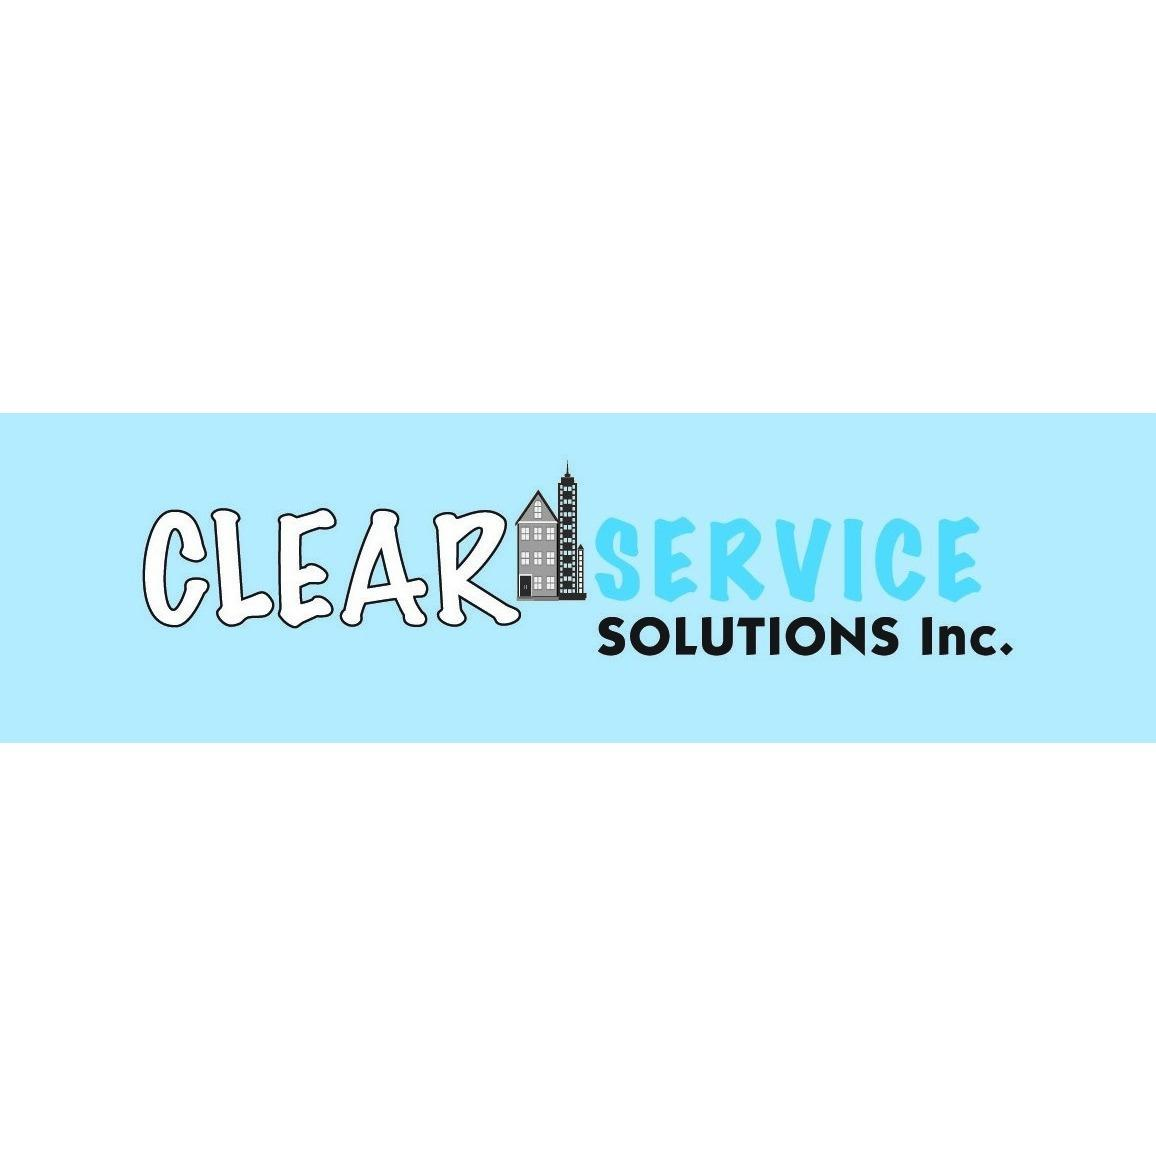 Clear Service Solutions Inc